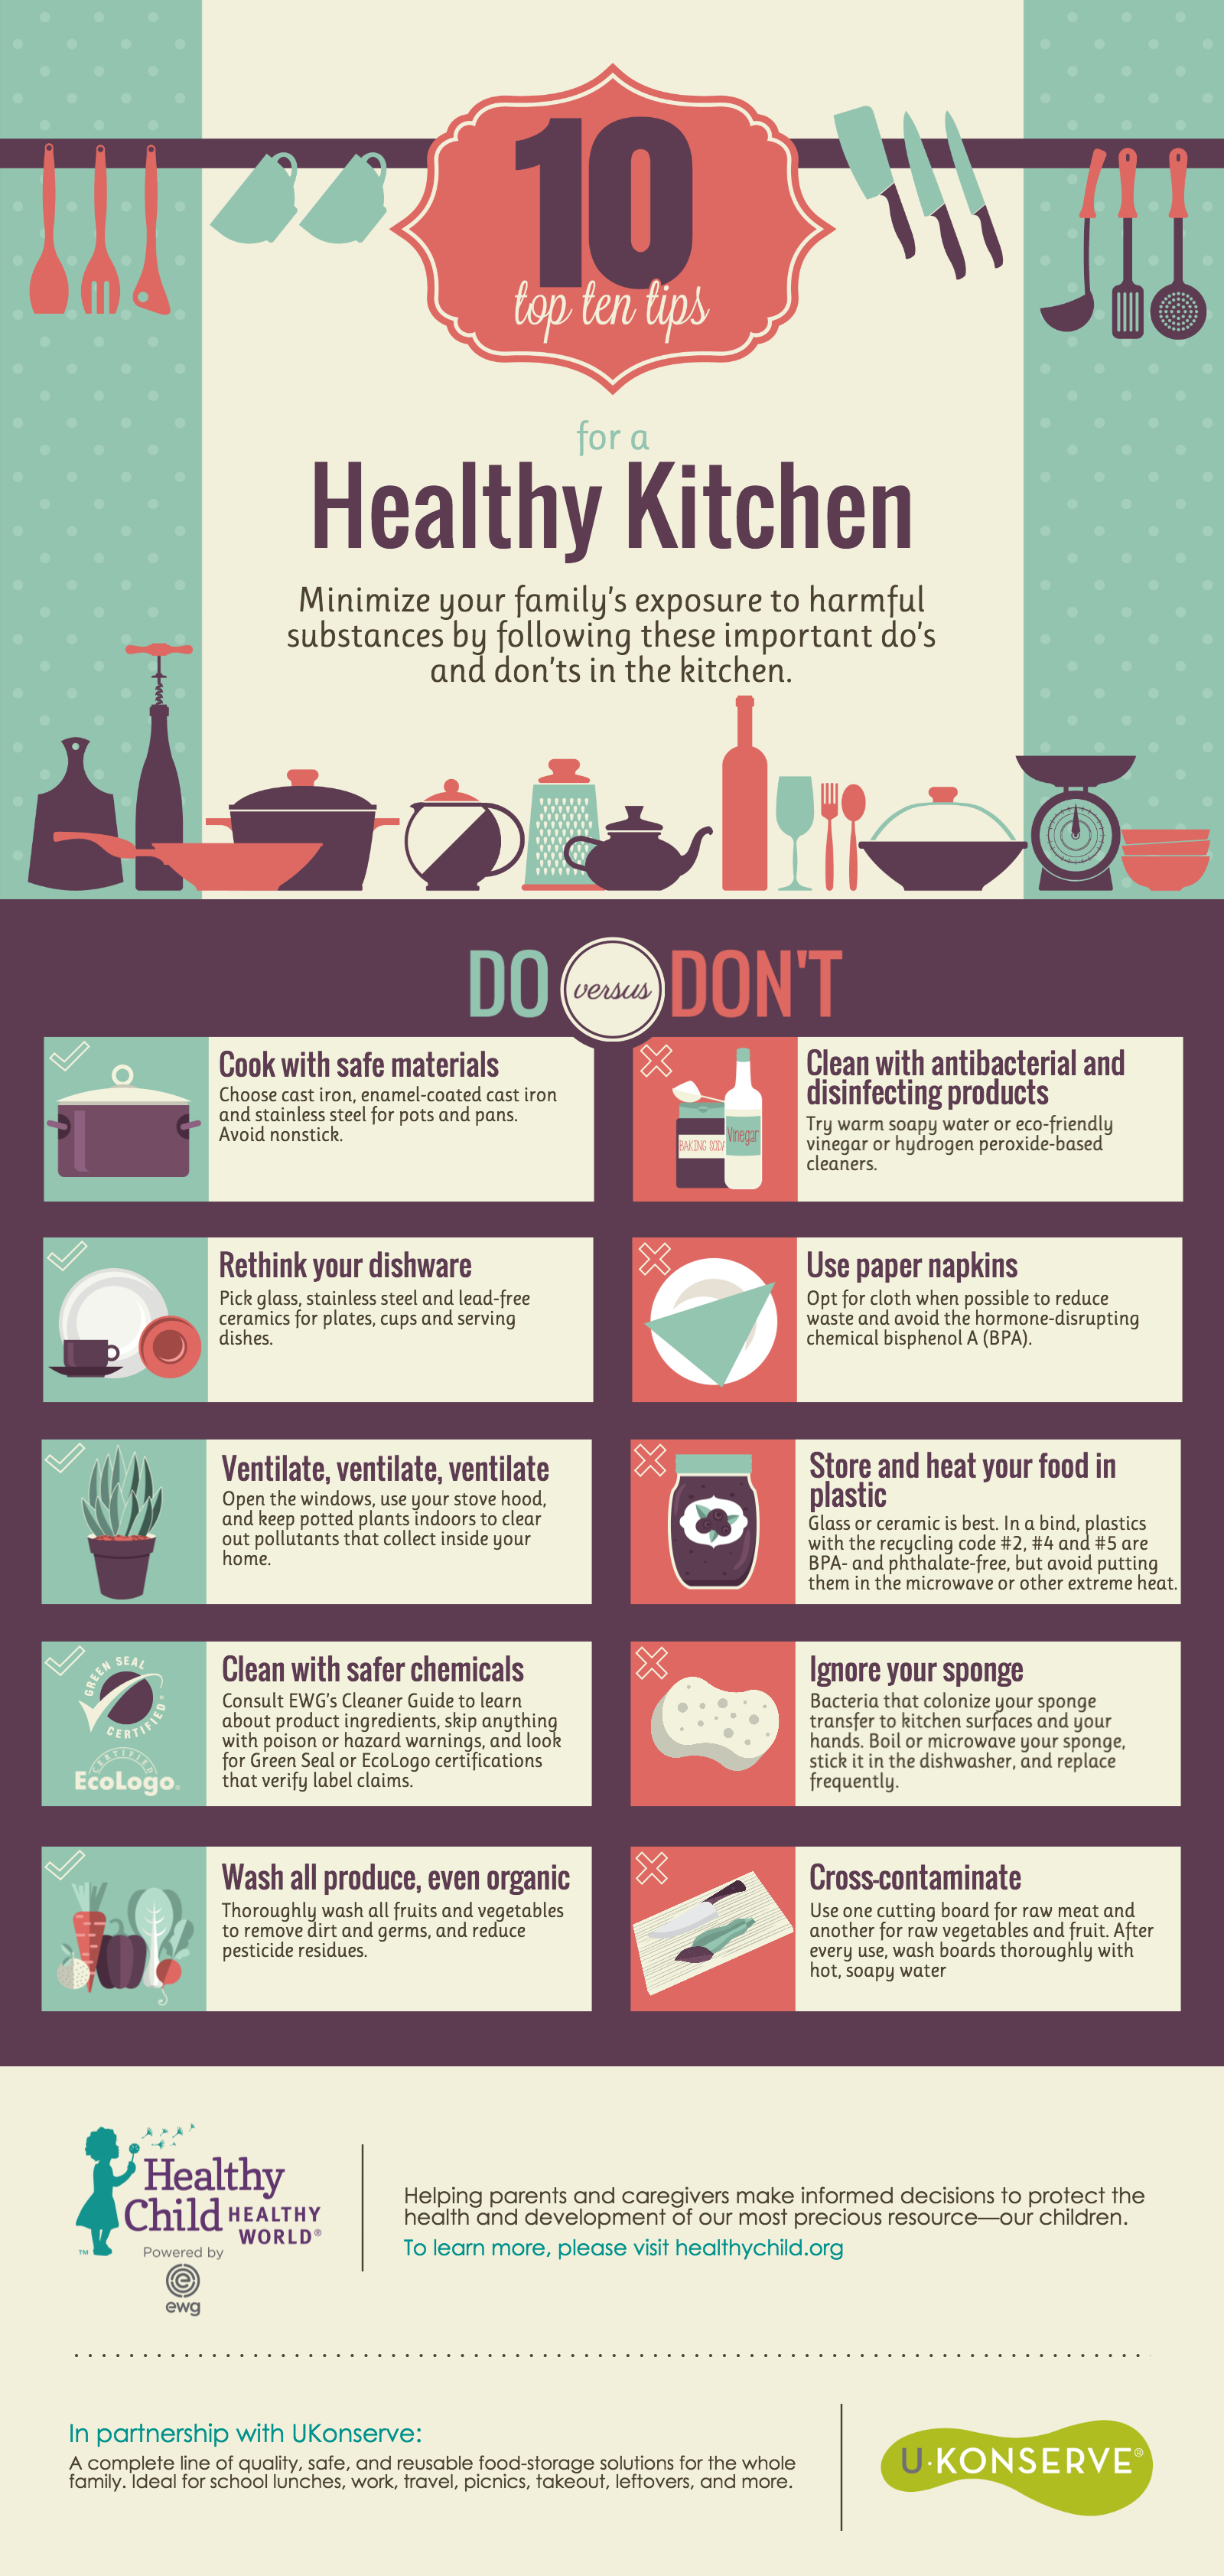 Top 10 Tips for a Healthy Kitchen